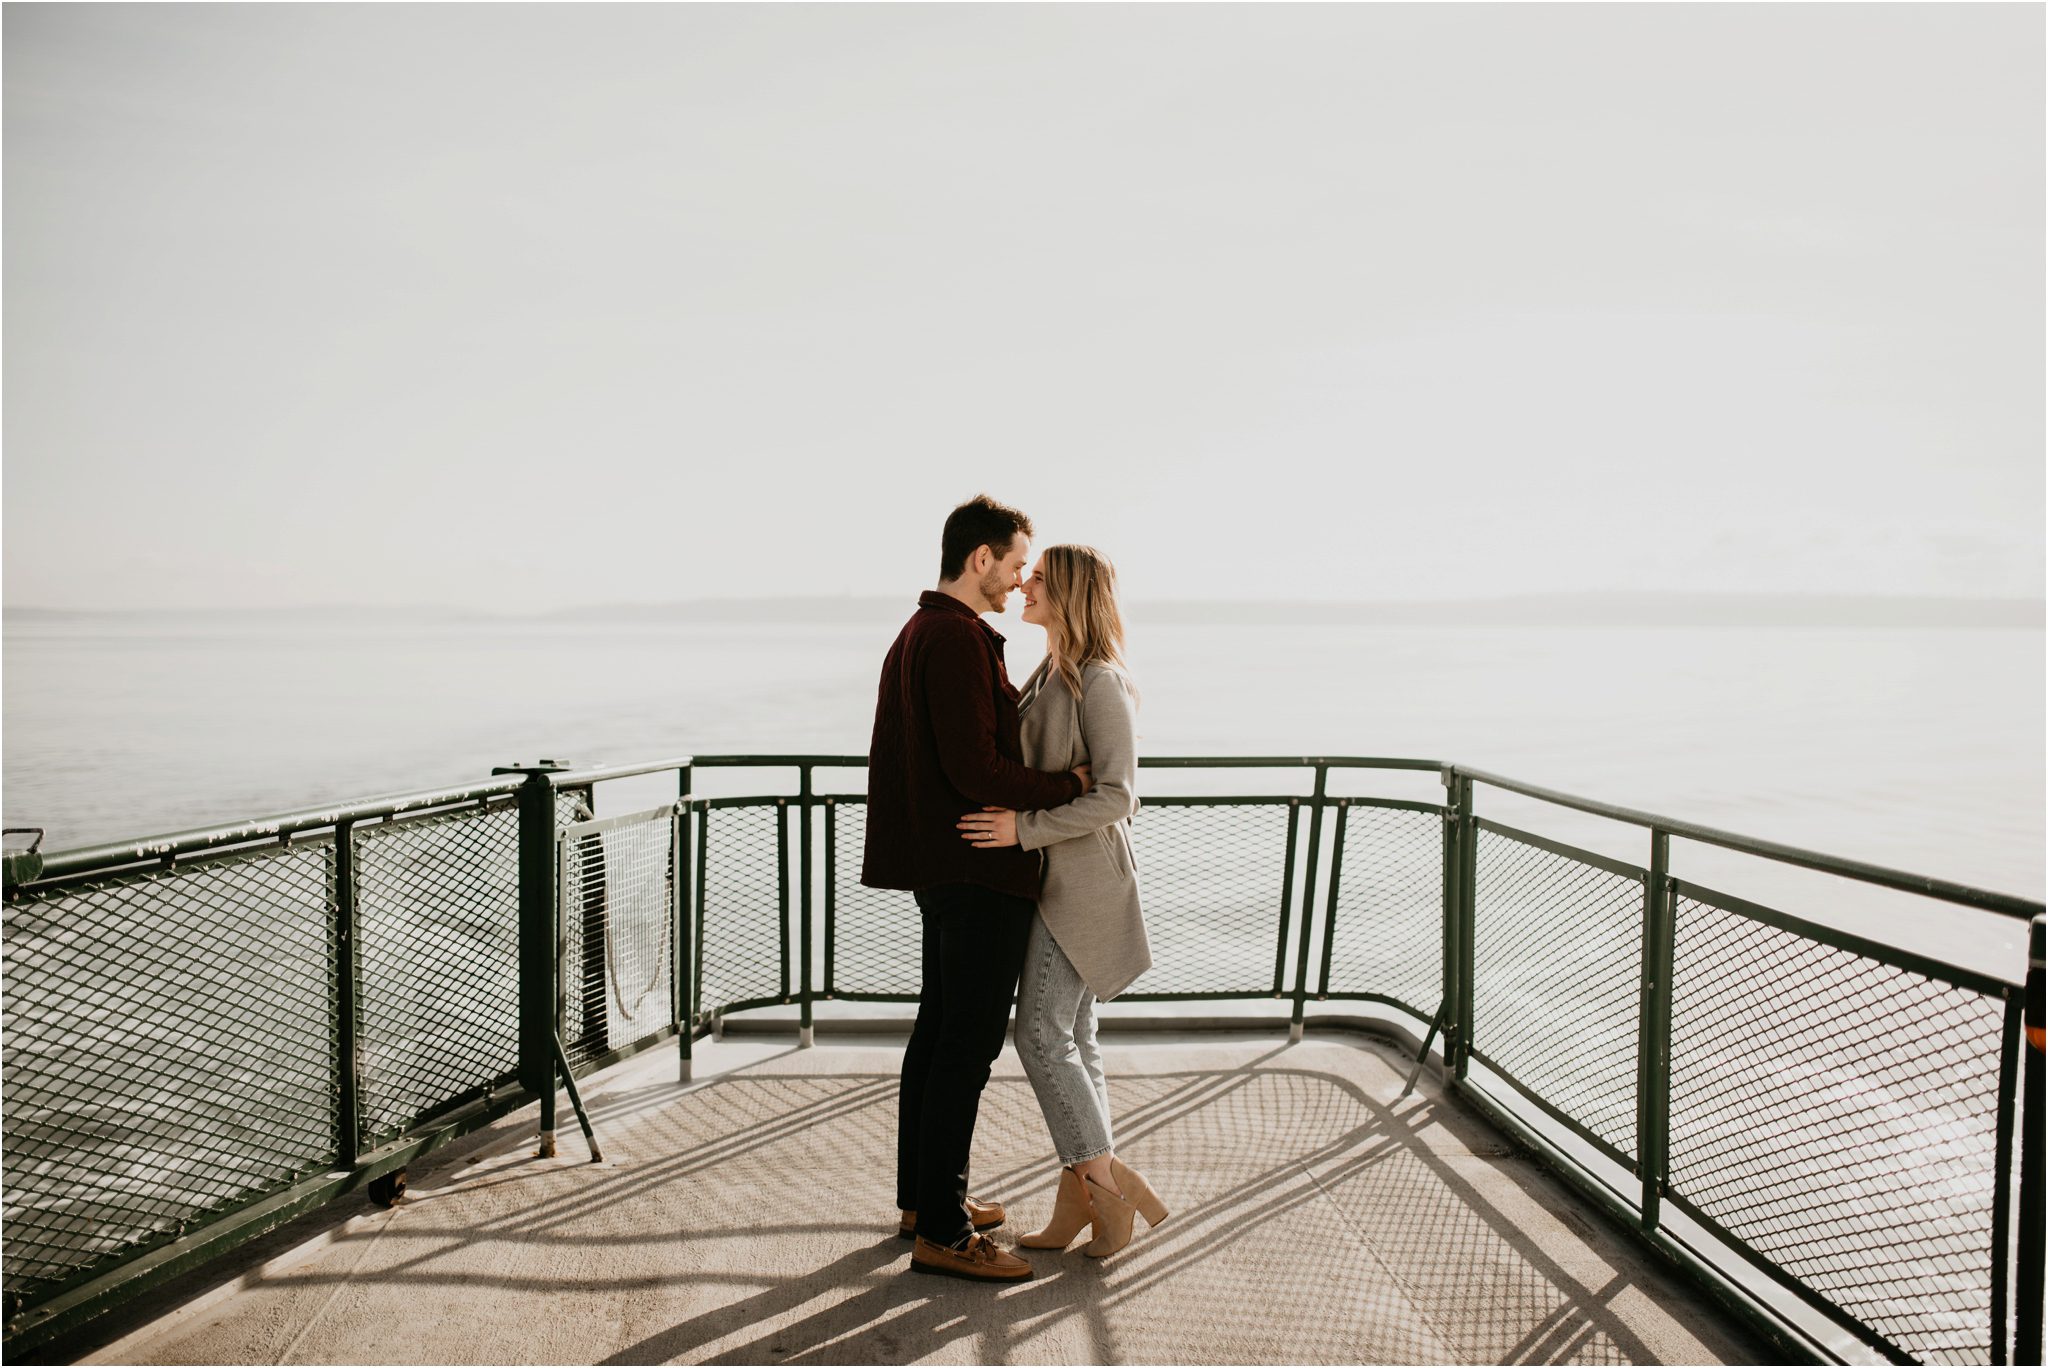 rile-and-ryan-fauntleroy-ferry-vashon-island-seattle-engagement-session-011.jpg